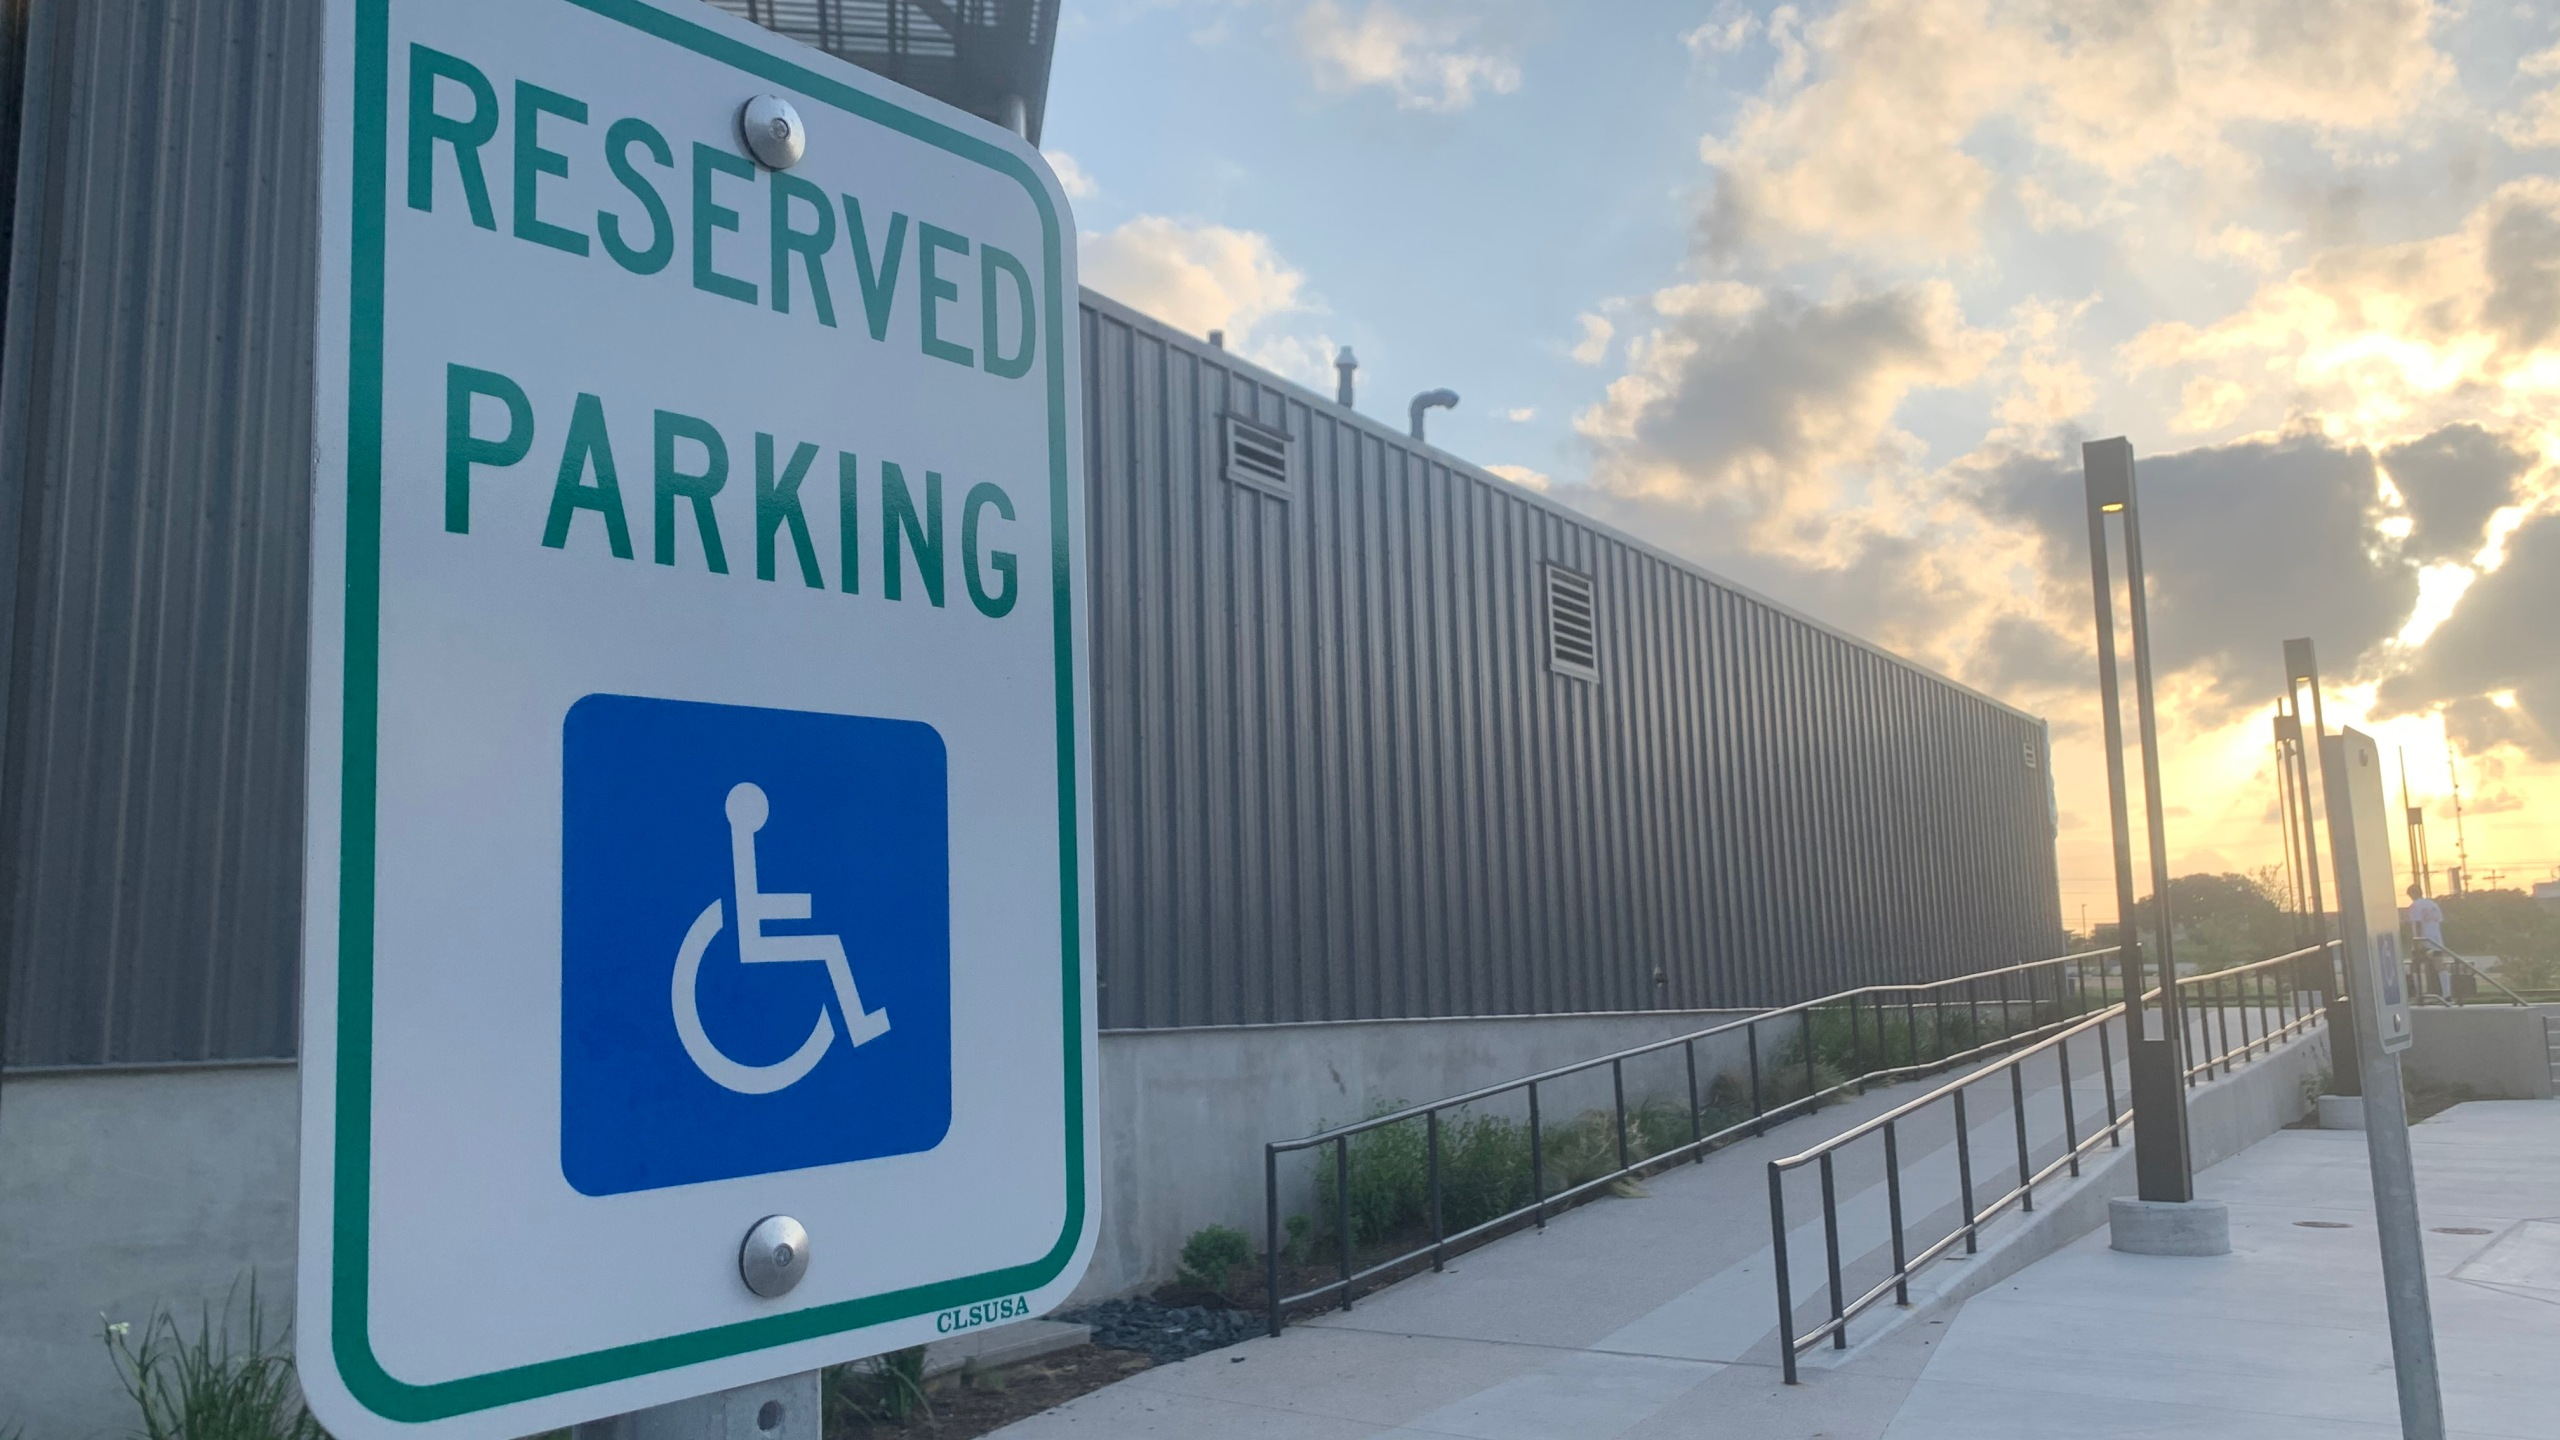 Reserved, accessible parking sign (KXAN Photo/Avery Travis)